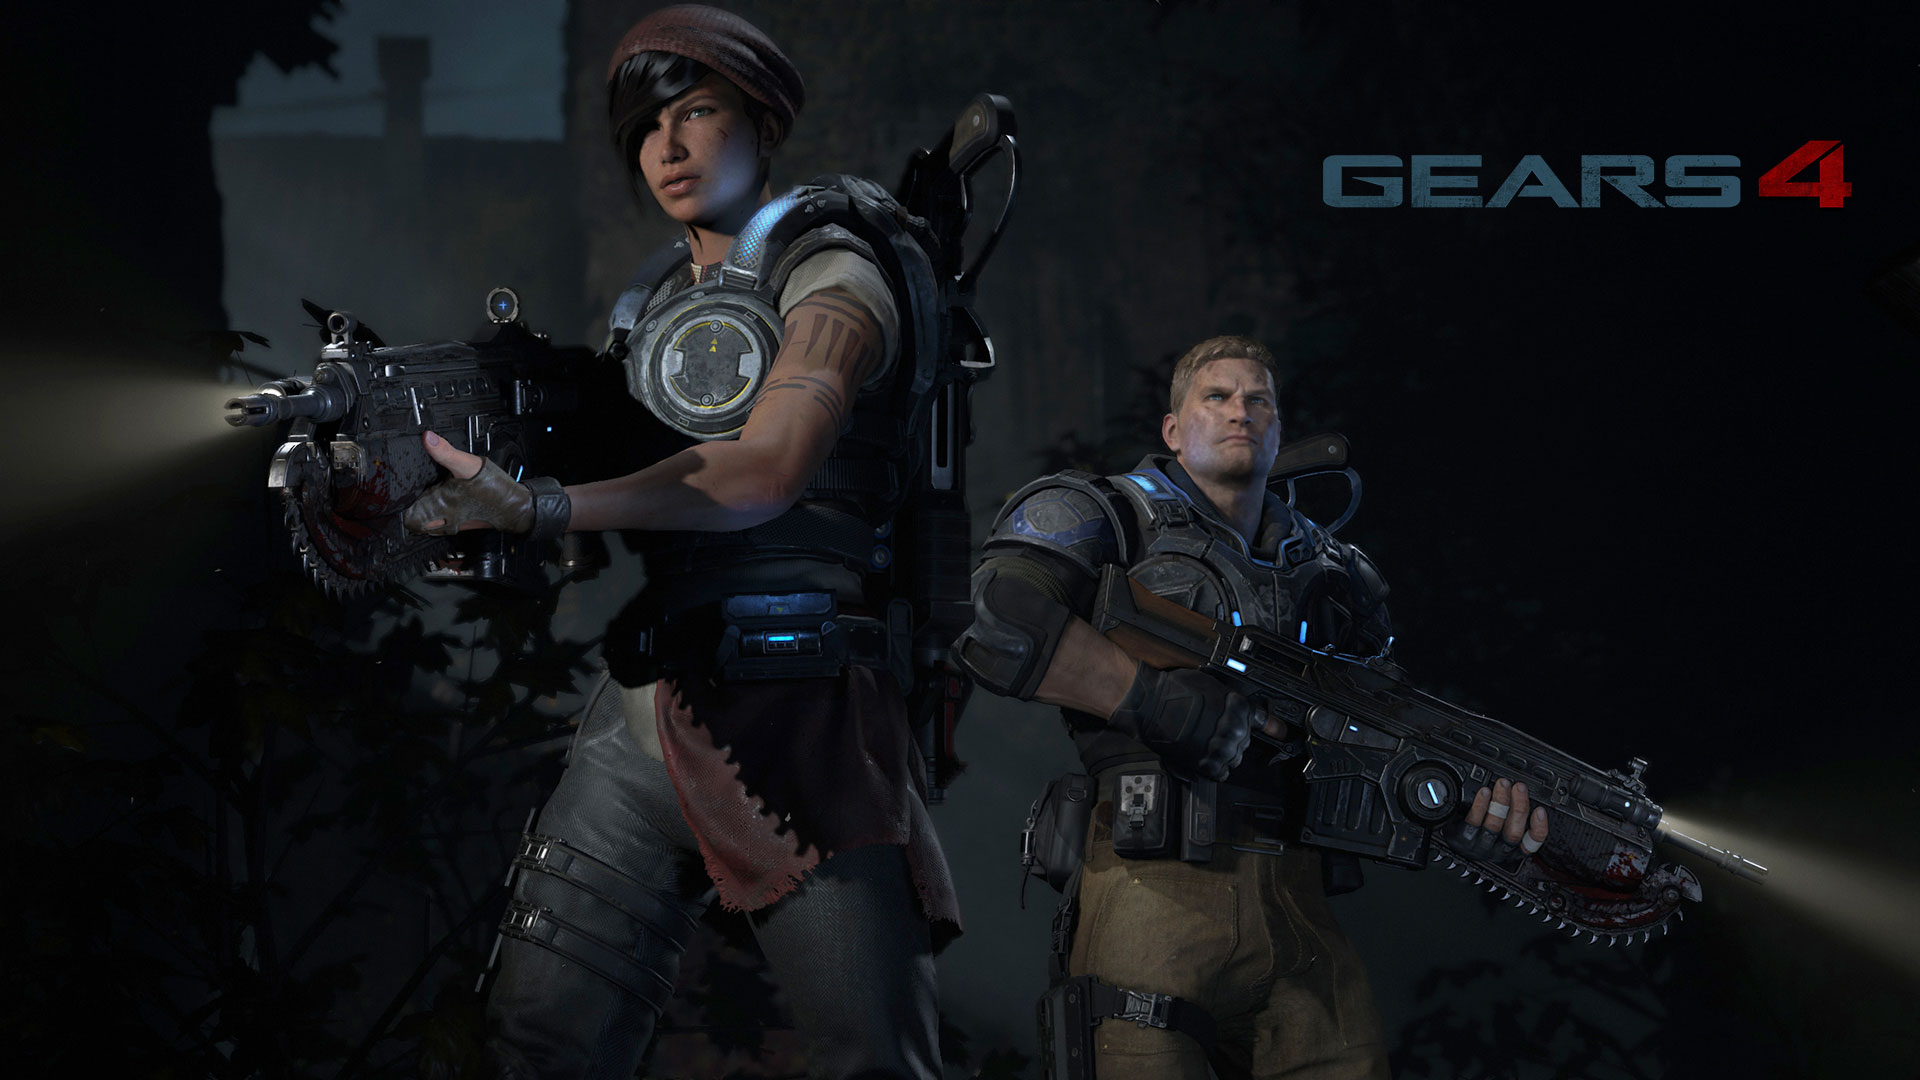 Gears of War 4 Widescreen for desktop